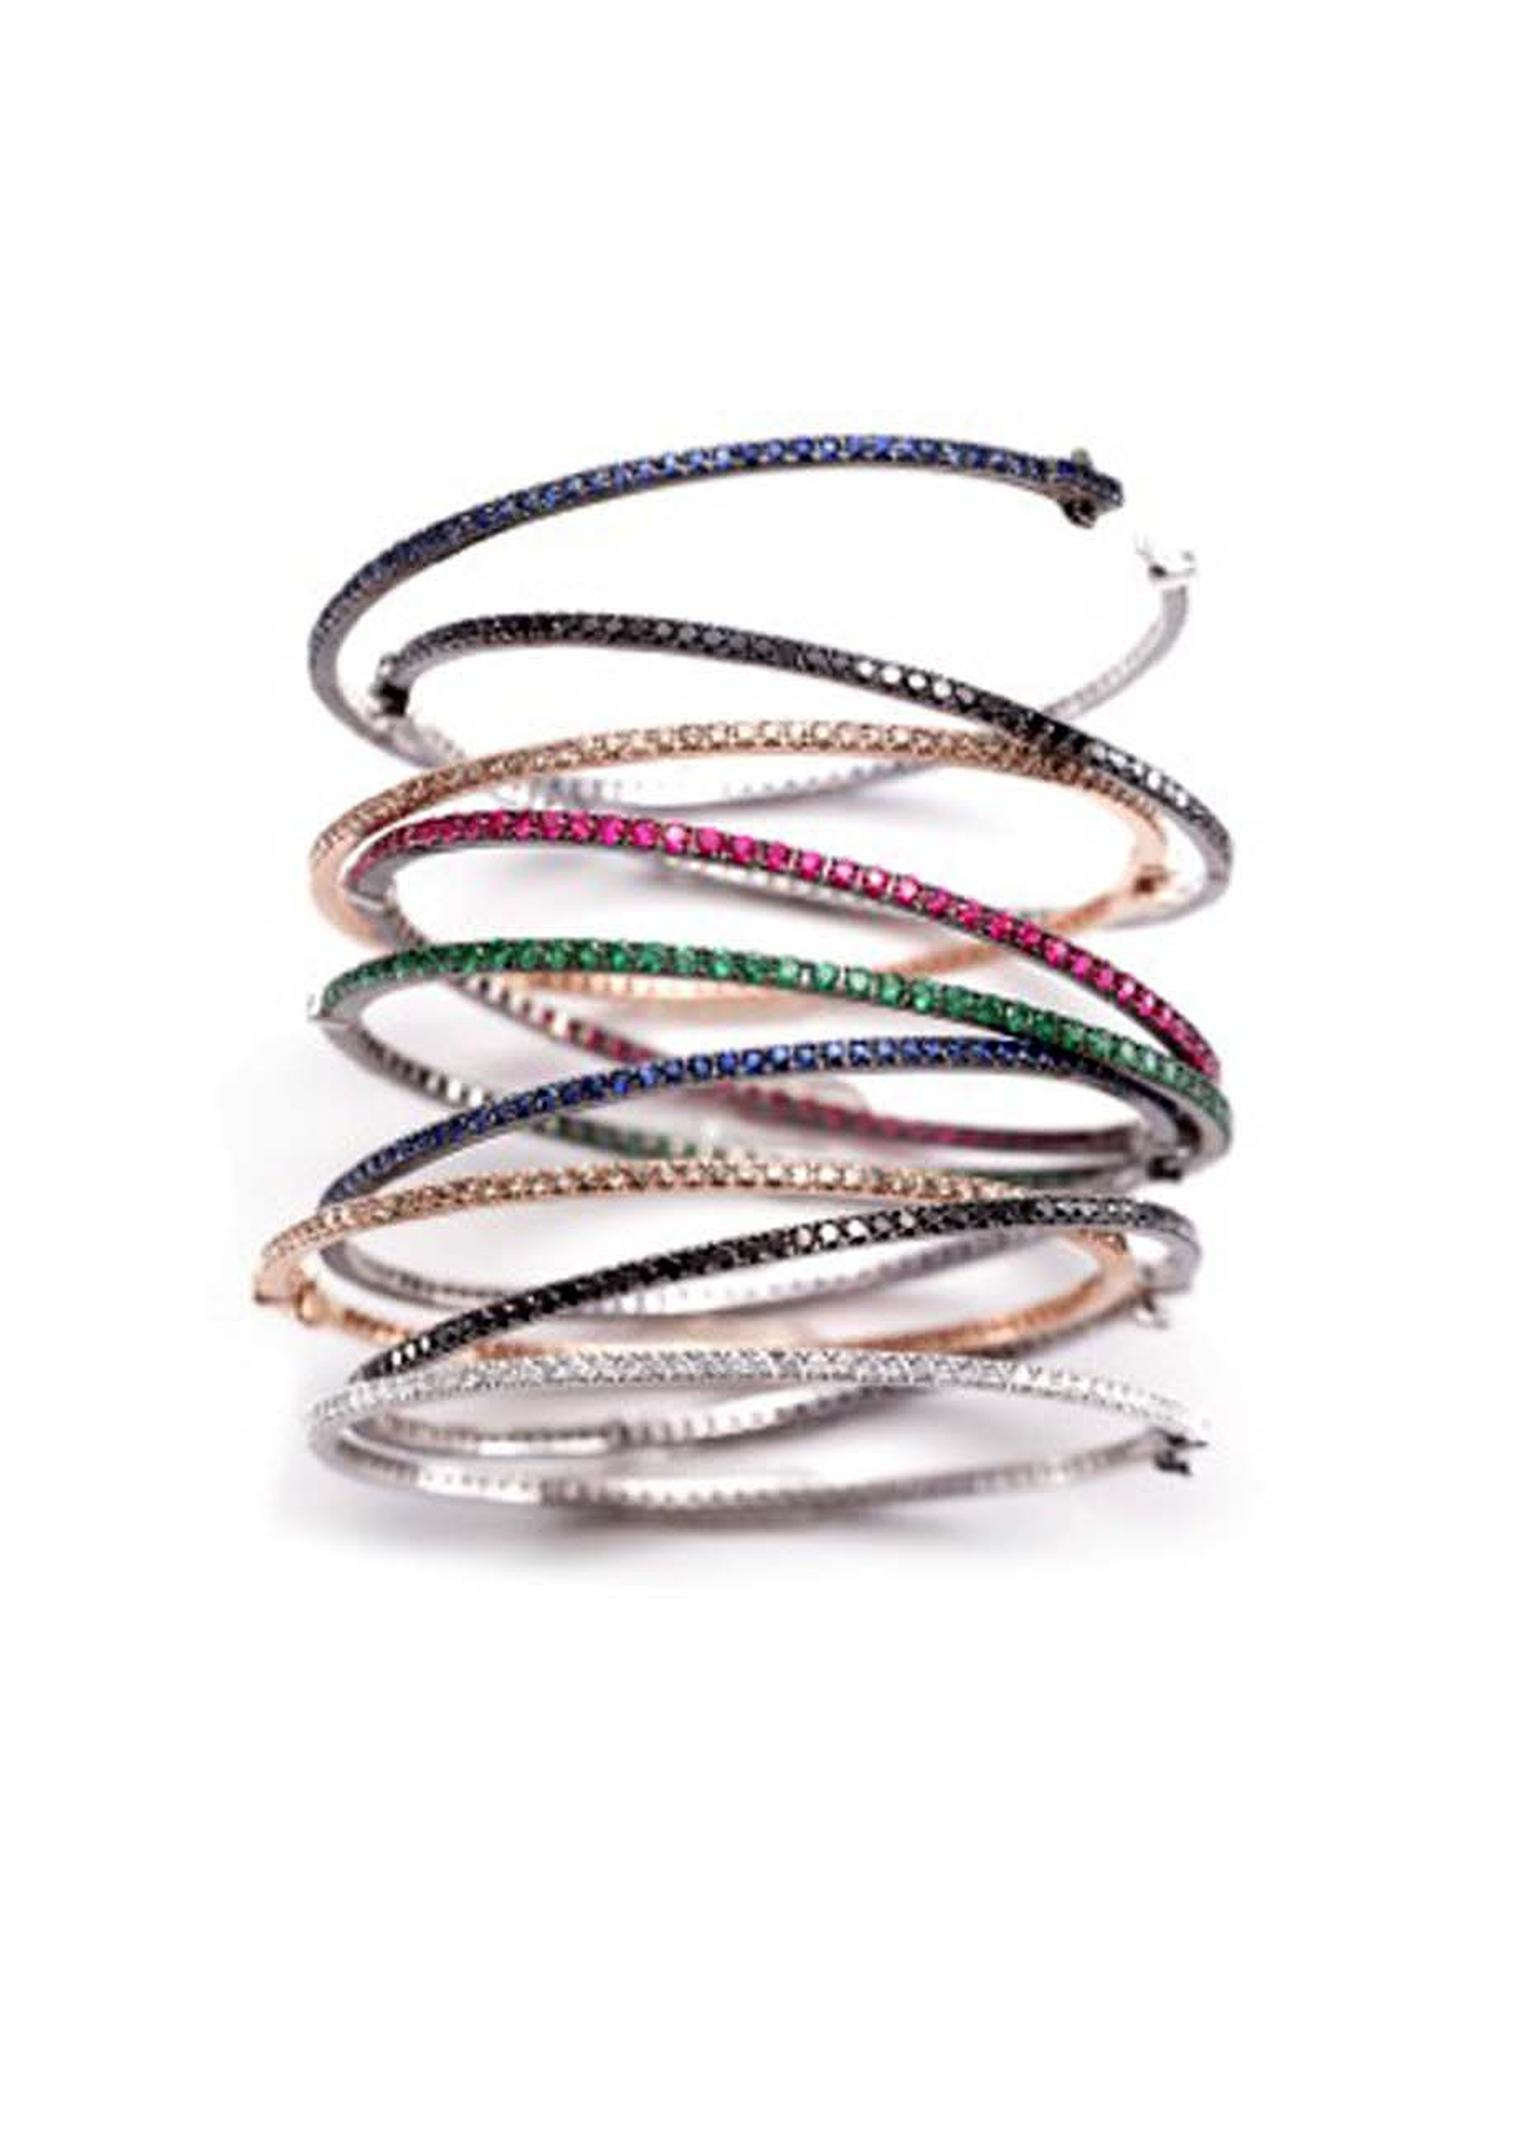 Nam Cho bangles are available in a rainbow of colours from classic white diamonds to orange, pink, purple and blue sapphires.